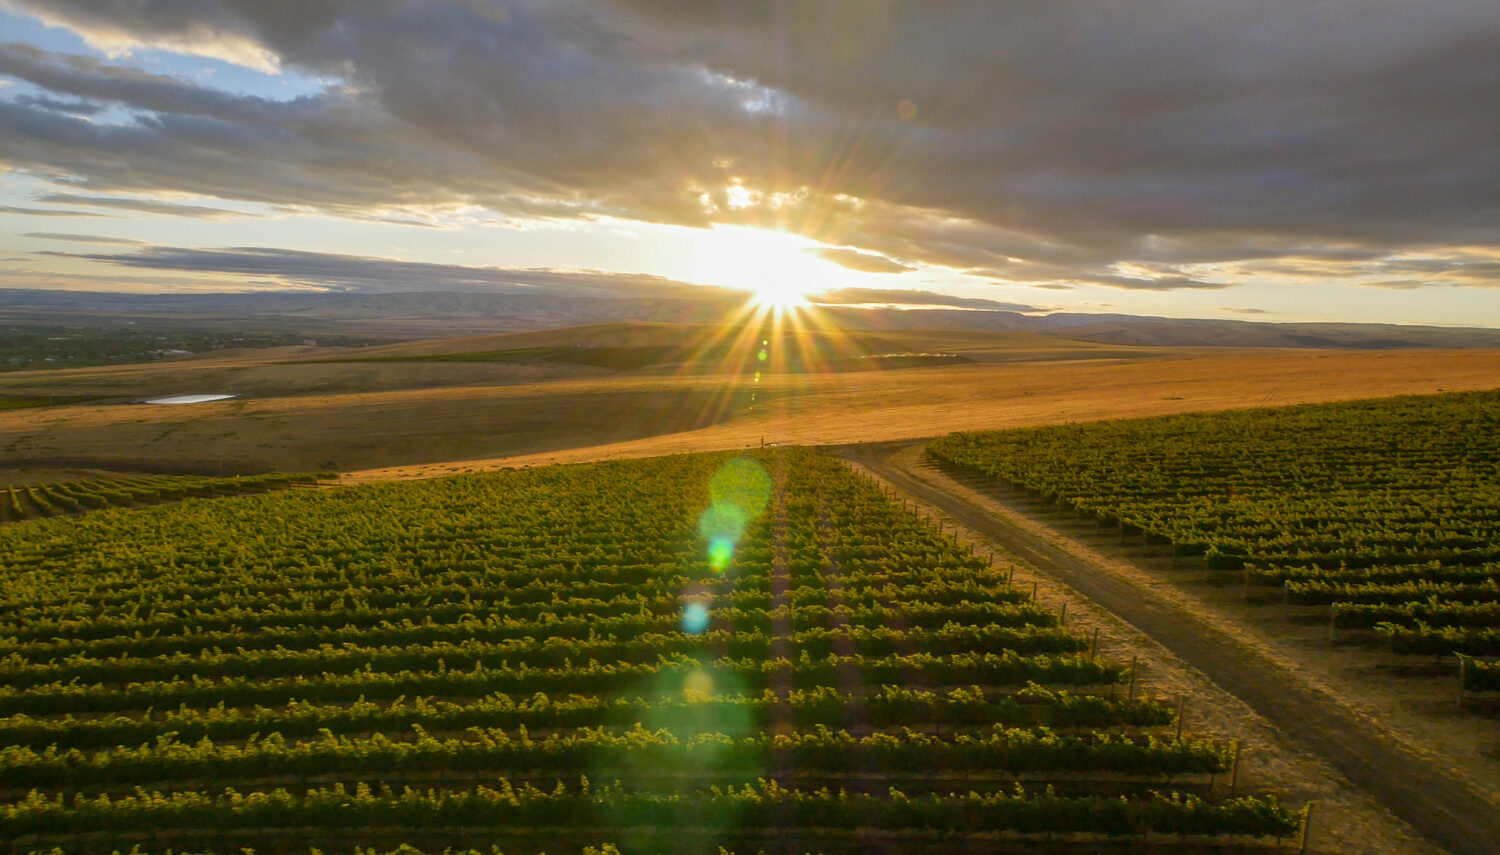 Green vines in horizontal rows at sunset with a dirt road on the right. A bright sun is on the horizon and grey clouds are above.